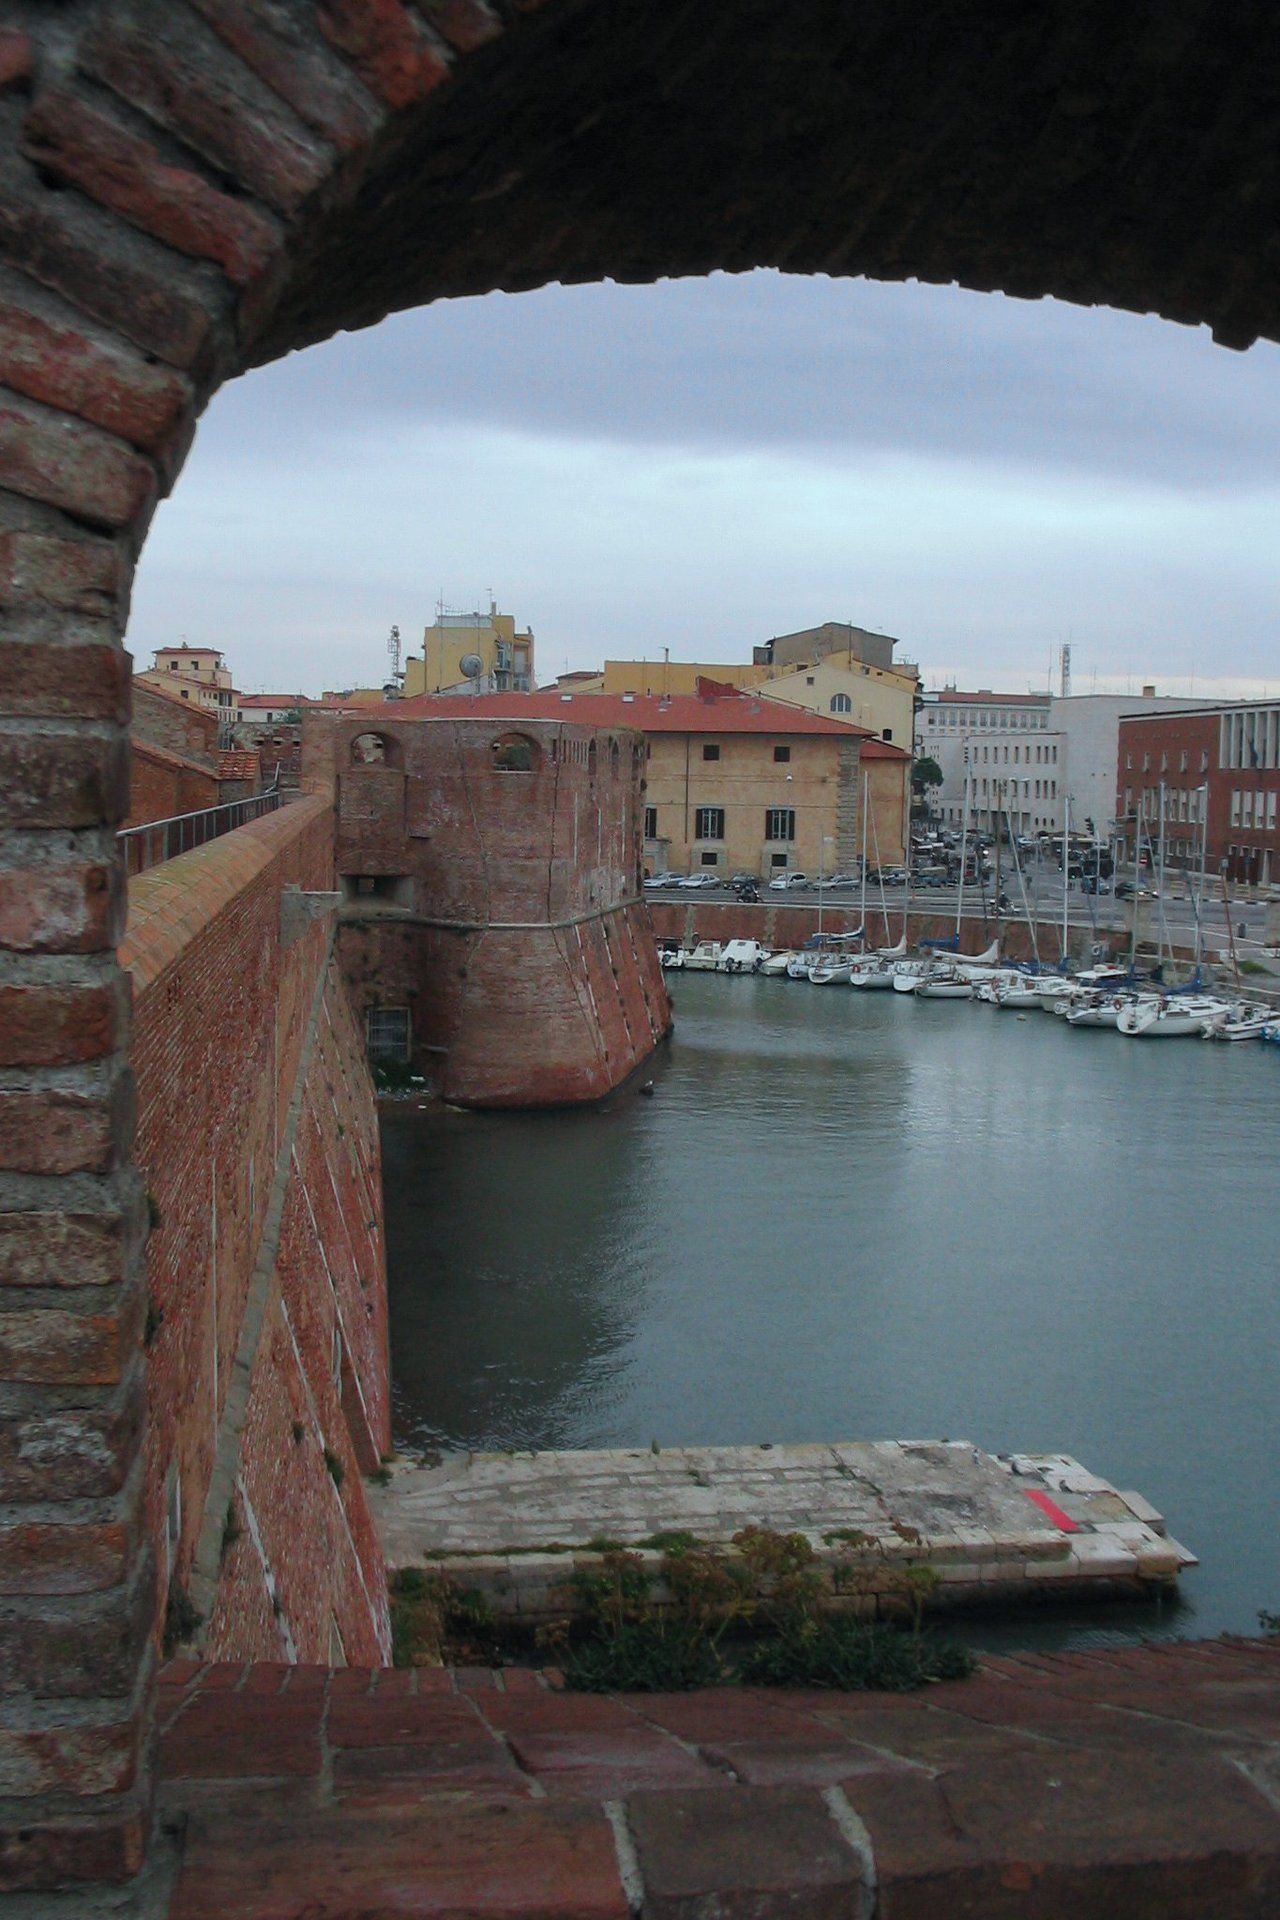 Livorno - Italy (With images) | Livorno, The good place, Italy